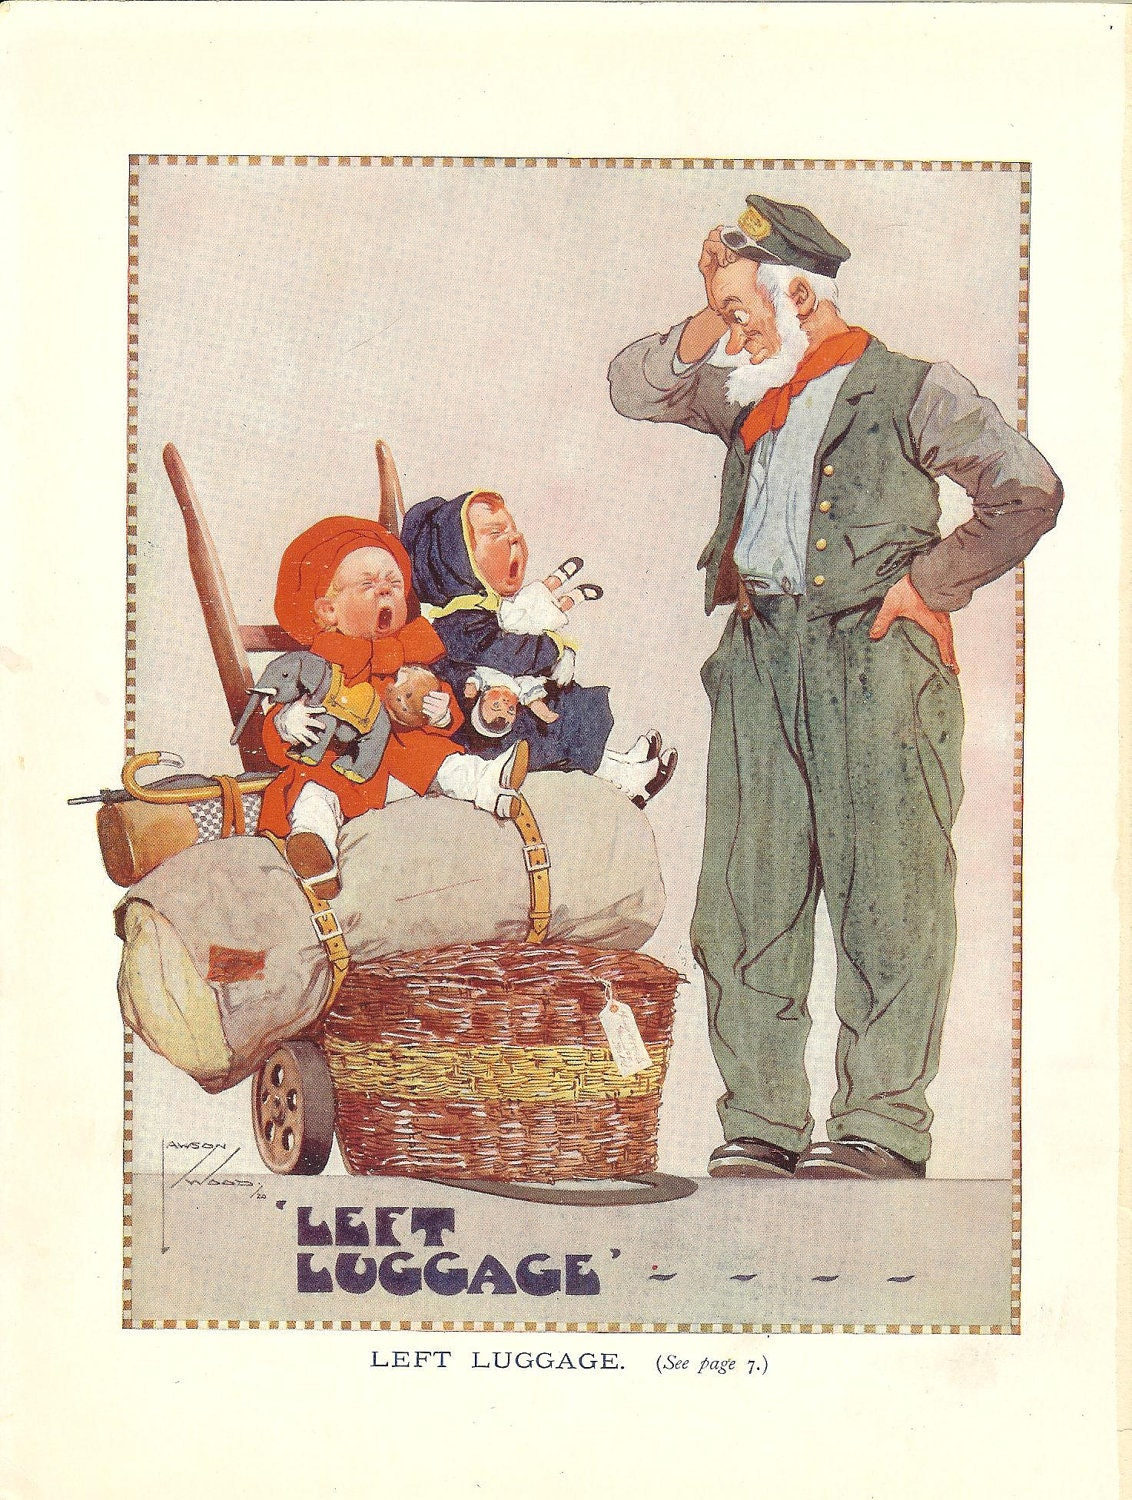 1923 Lawson Wood Children's Print Left Luggage Puzzled